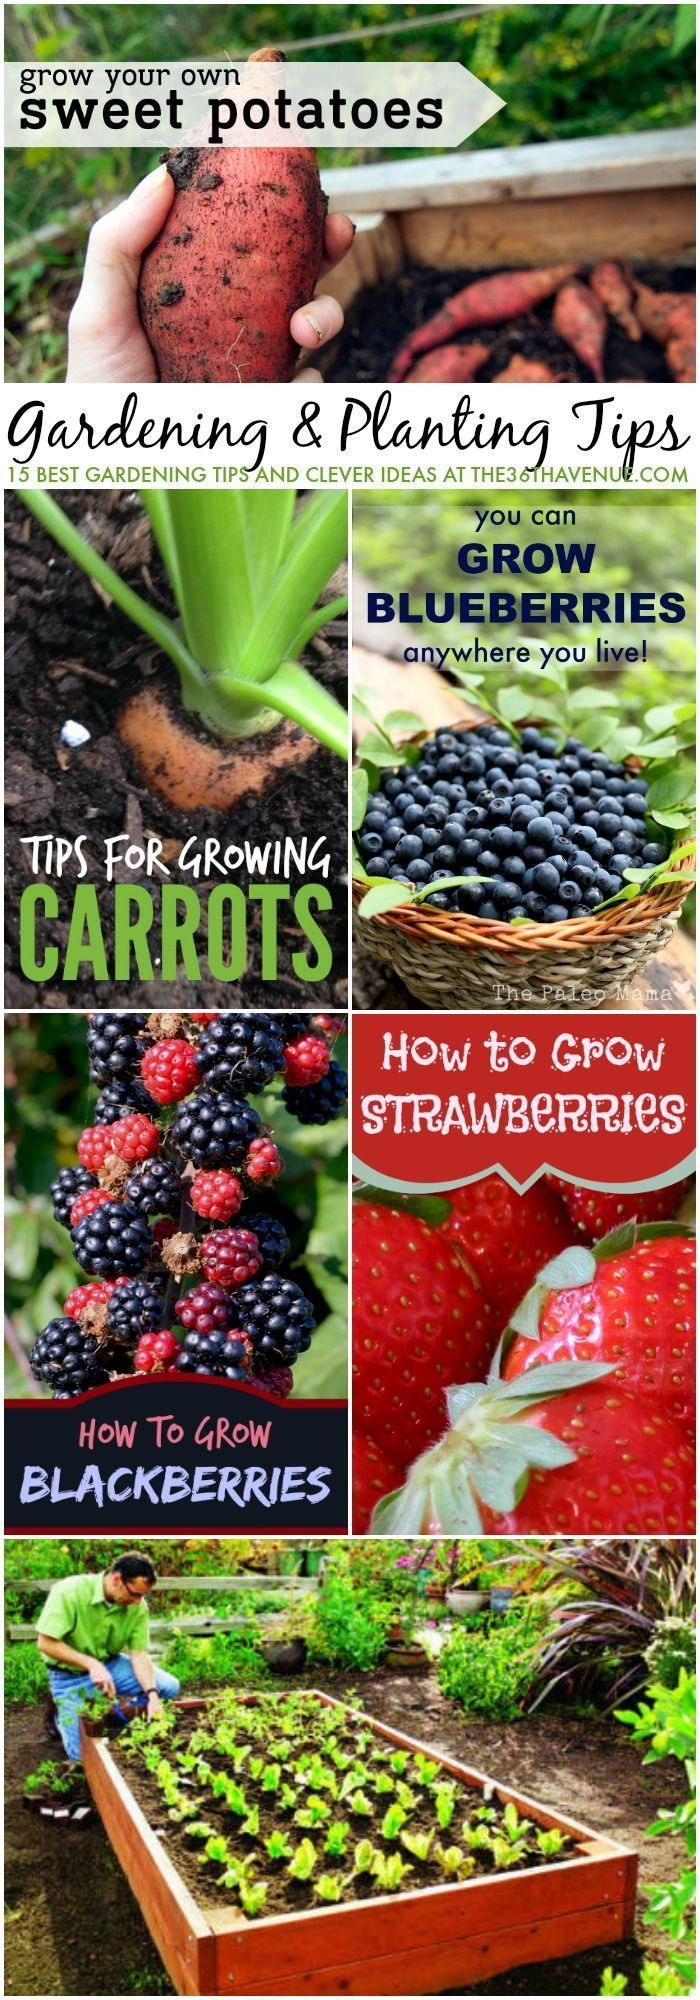 Top 10 Important Gardening Tips And Uses for Epsom salts {Epsom Salt for Tomato, and Pepper Growing, helps prevent blossom end rot and encourages bigger fruit and healthier plants.